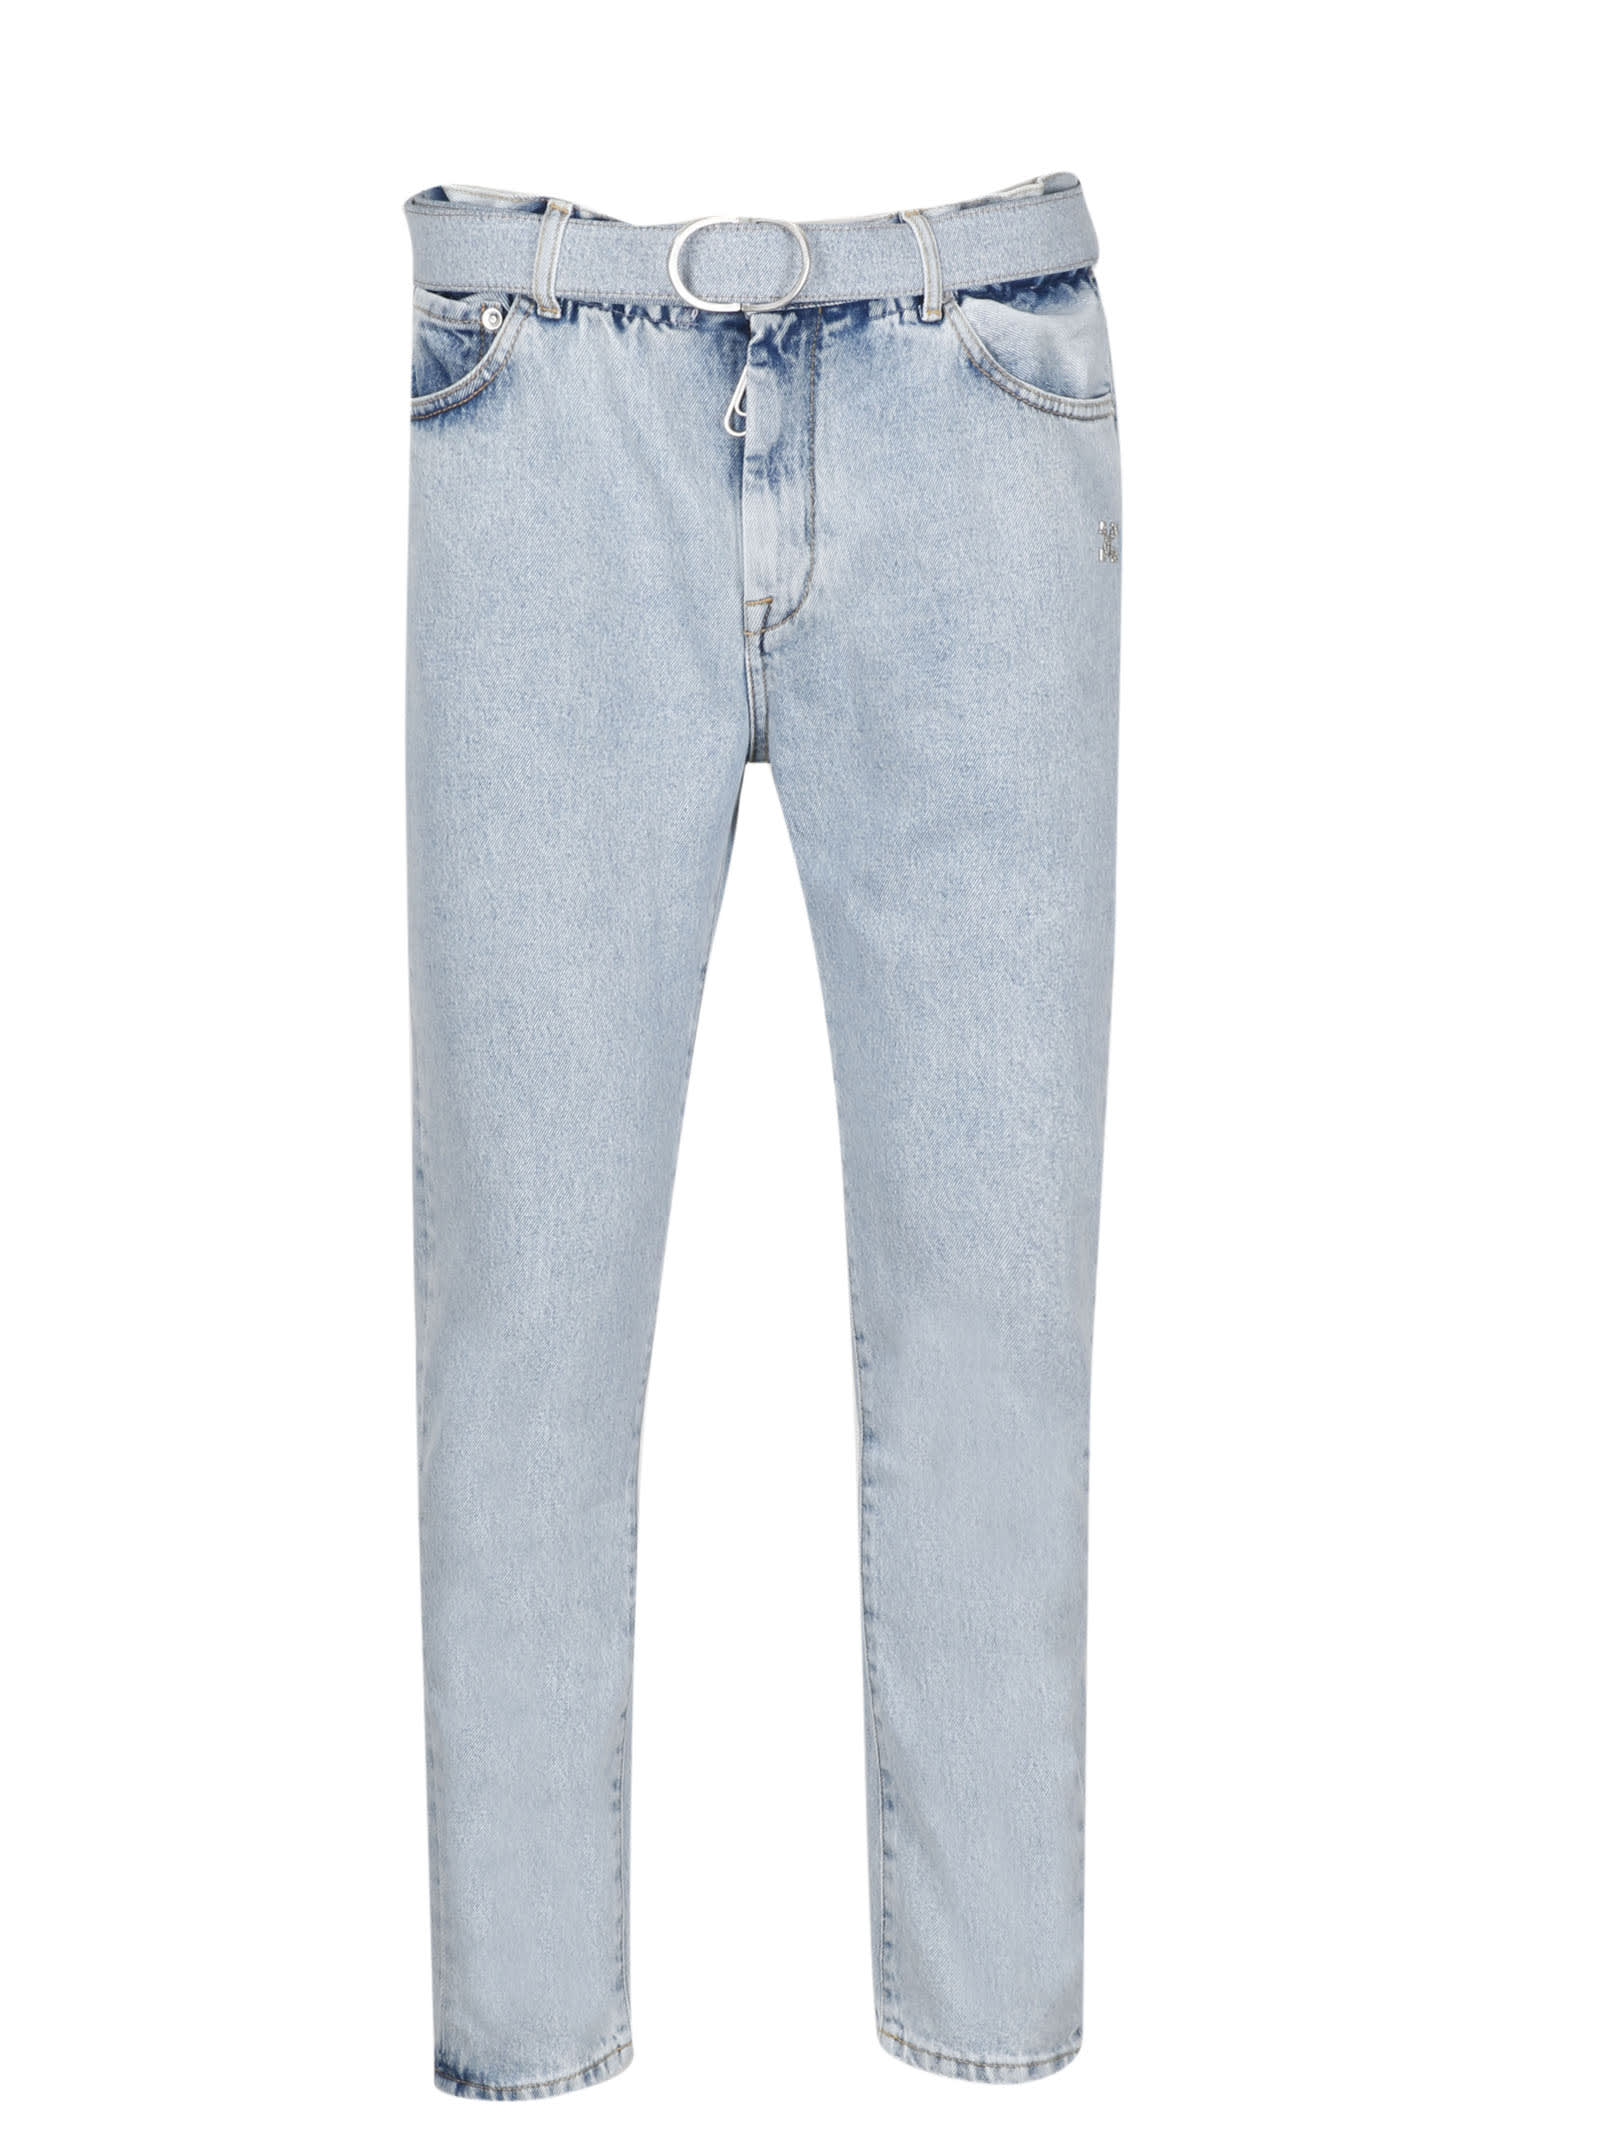 Off-White Slim Low Crotch Bleach Jeans